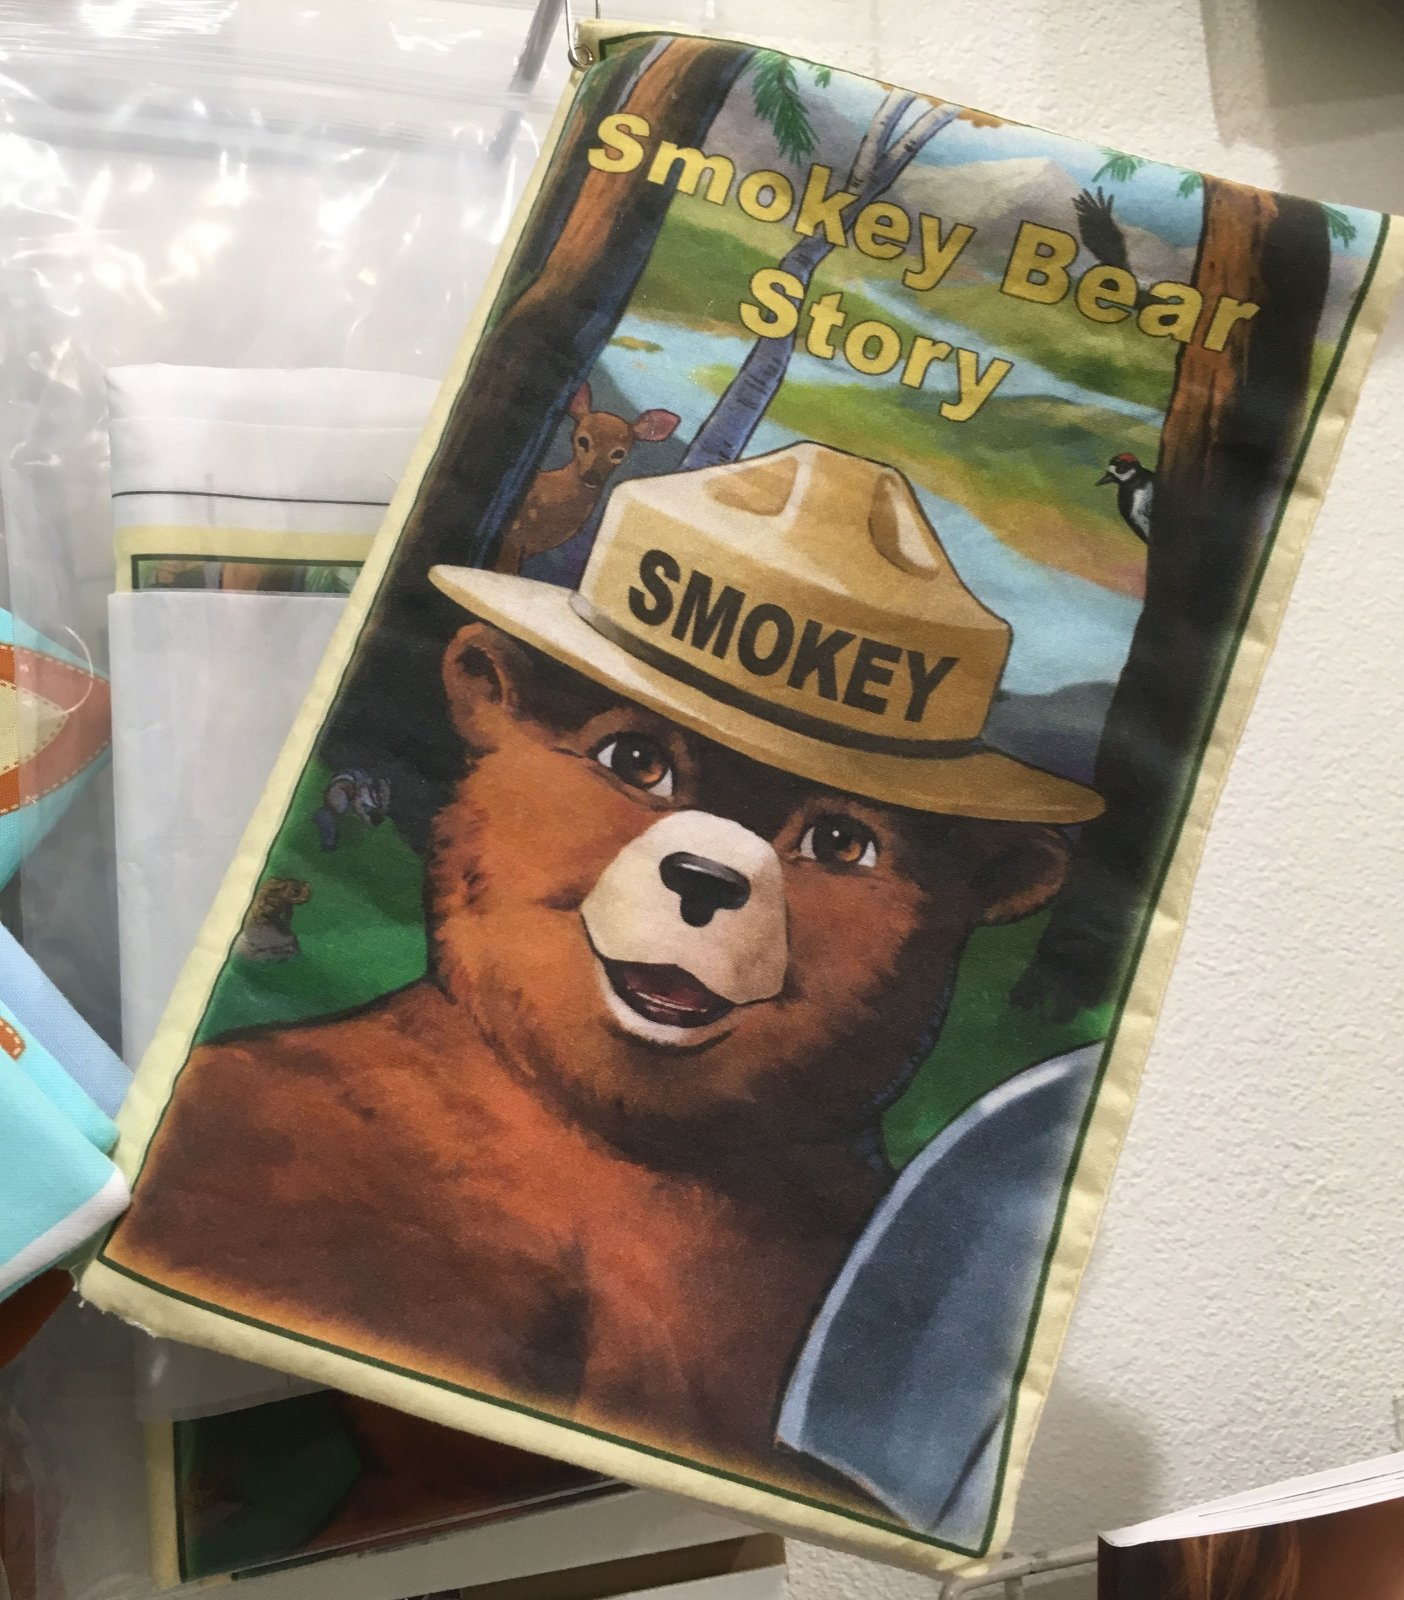 Smokey Bear Soft Book